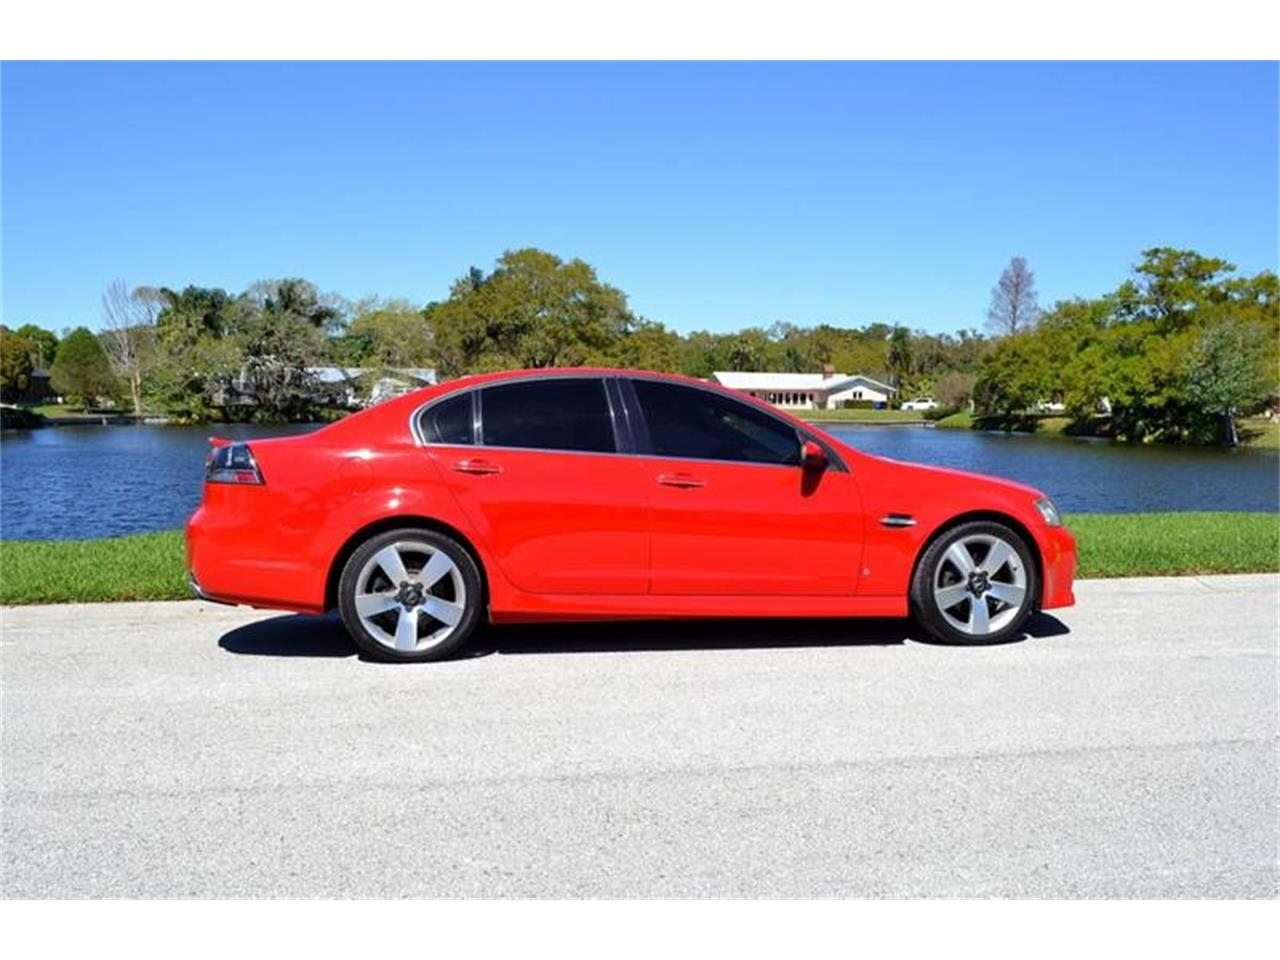 2009 Pontiac G8 for sale in Clearwater, FL – photo 4